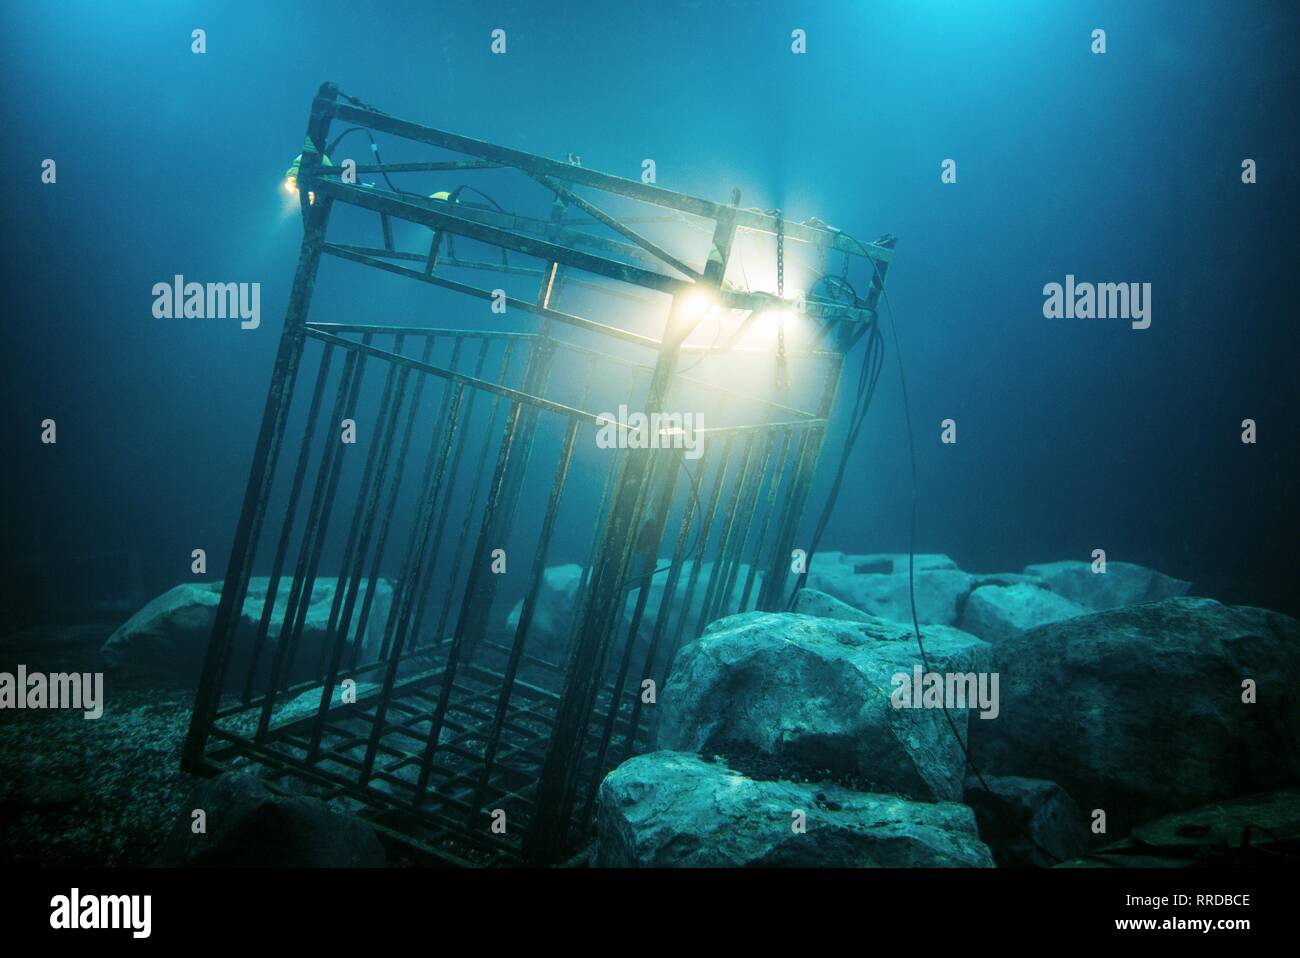 47 mètres plus bas, PLONGÉE CAGE, 2017 Photo Stock